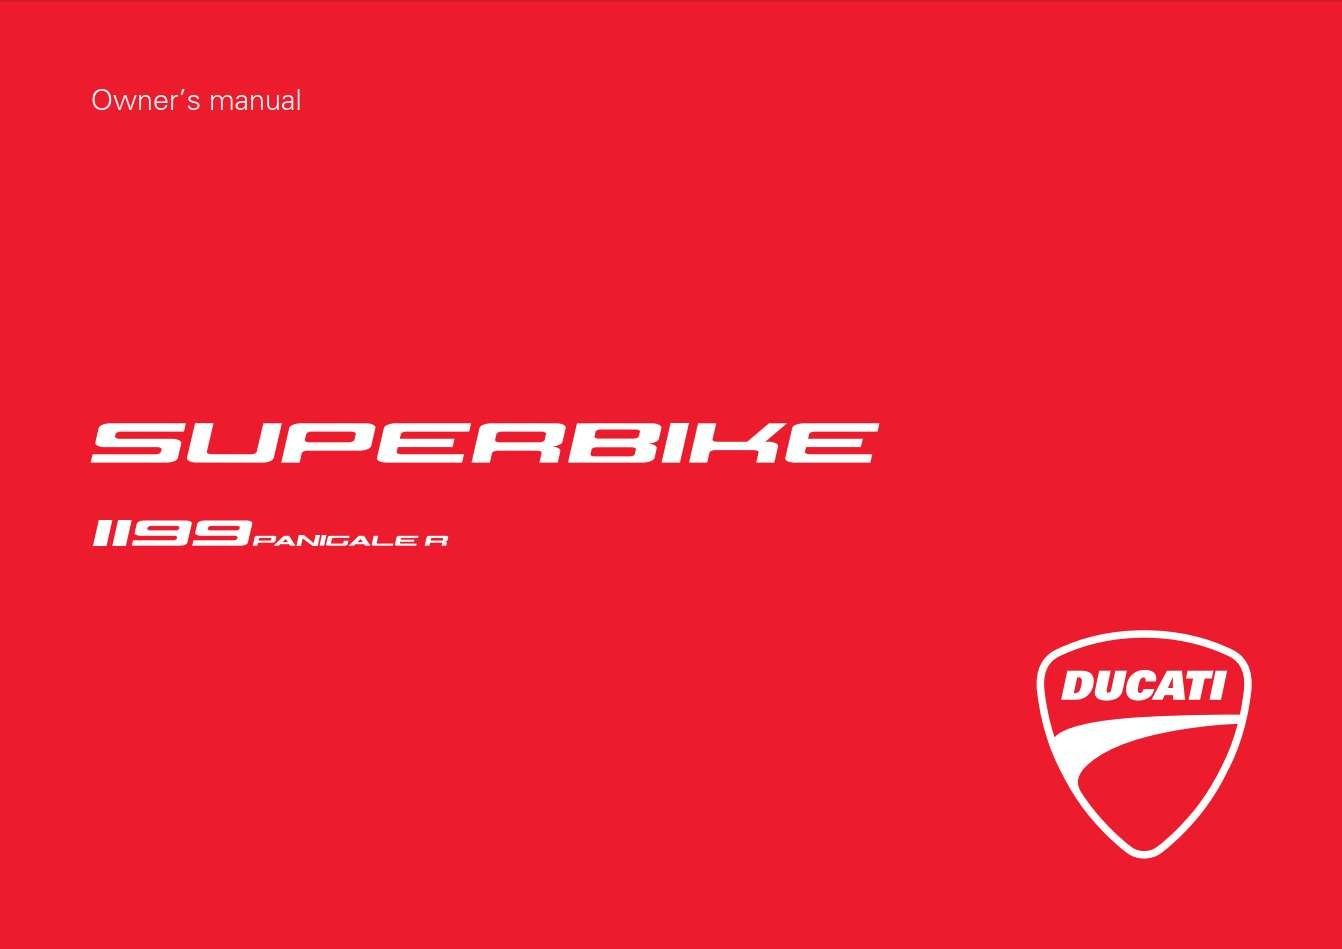 Ducati Sbk 1199r Abs Usa My13 2013 Owner U2019s Manual Has Been